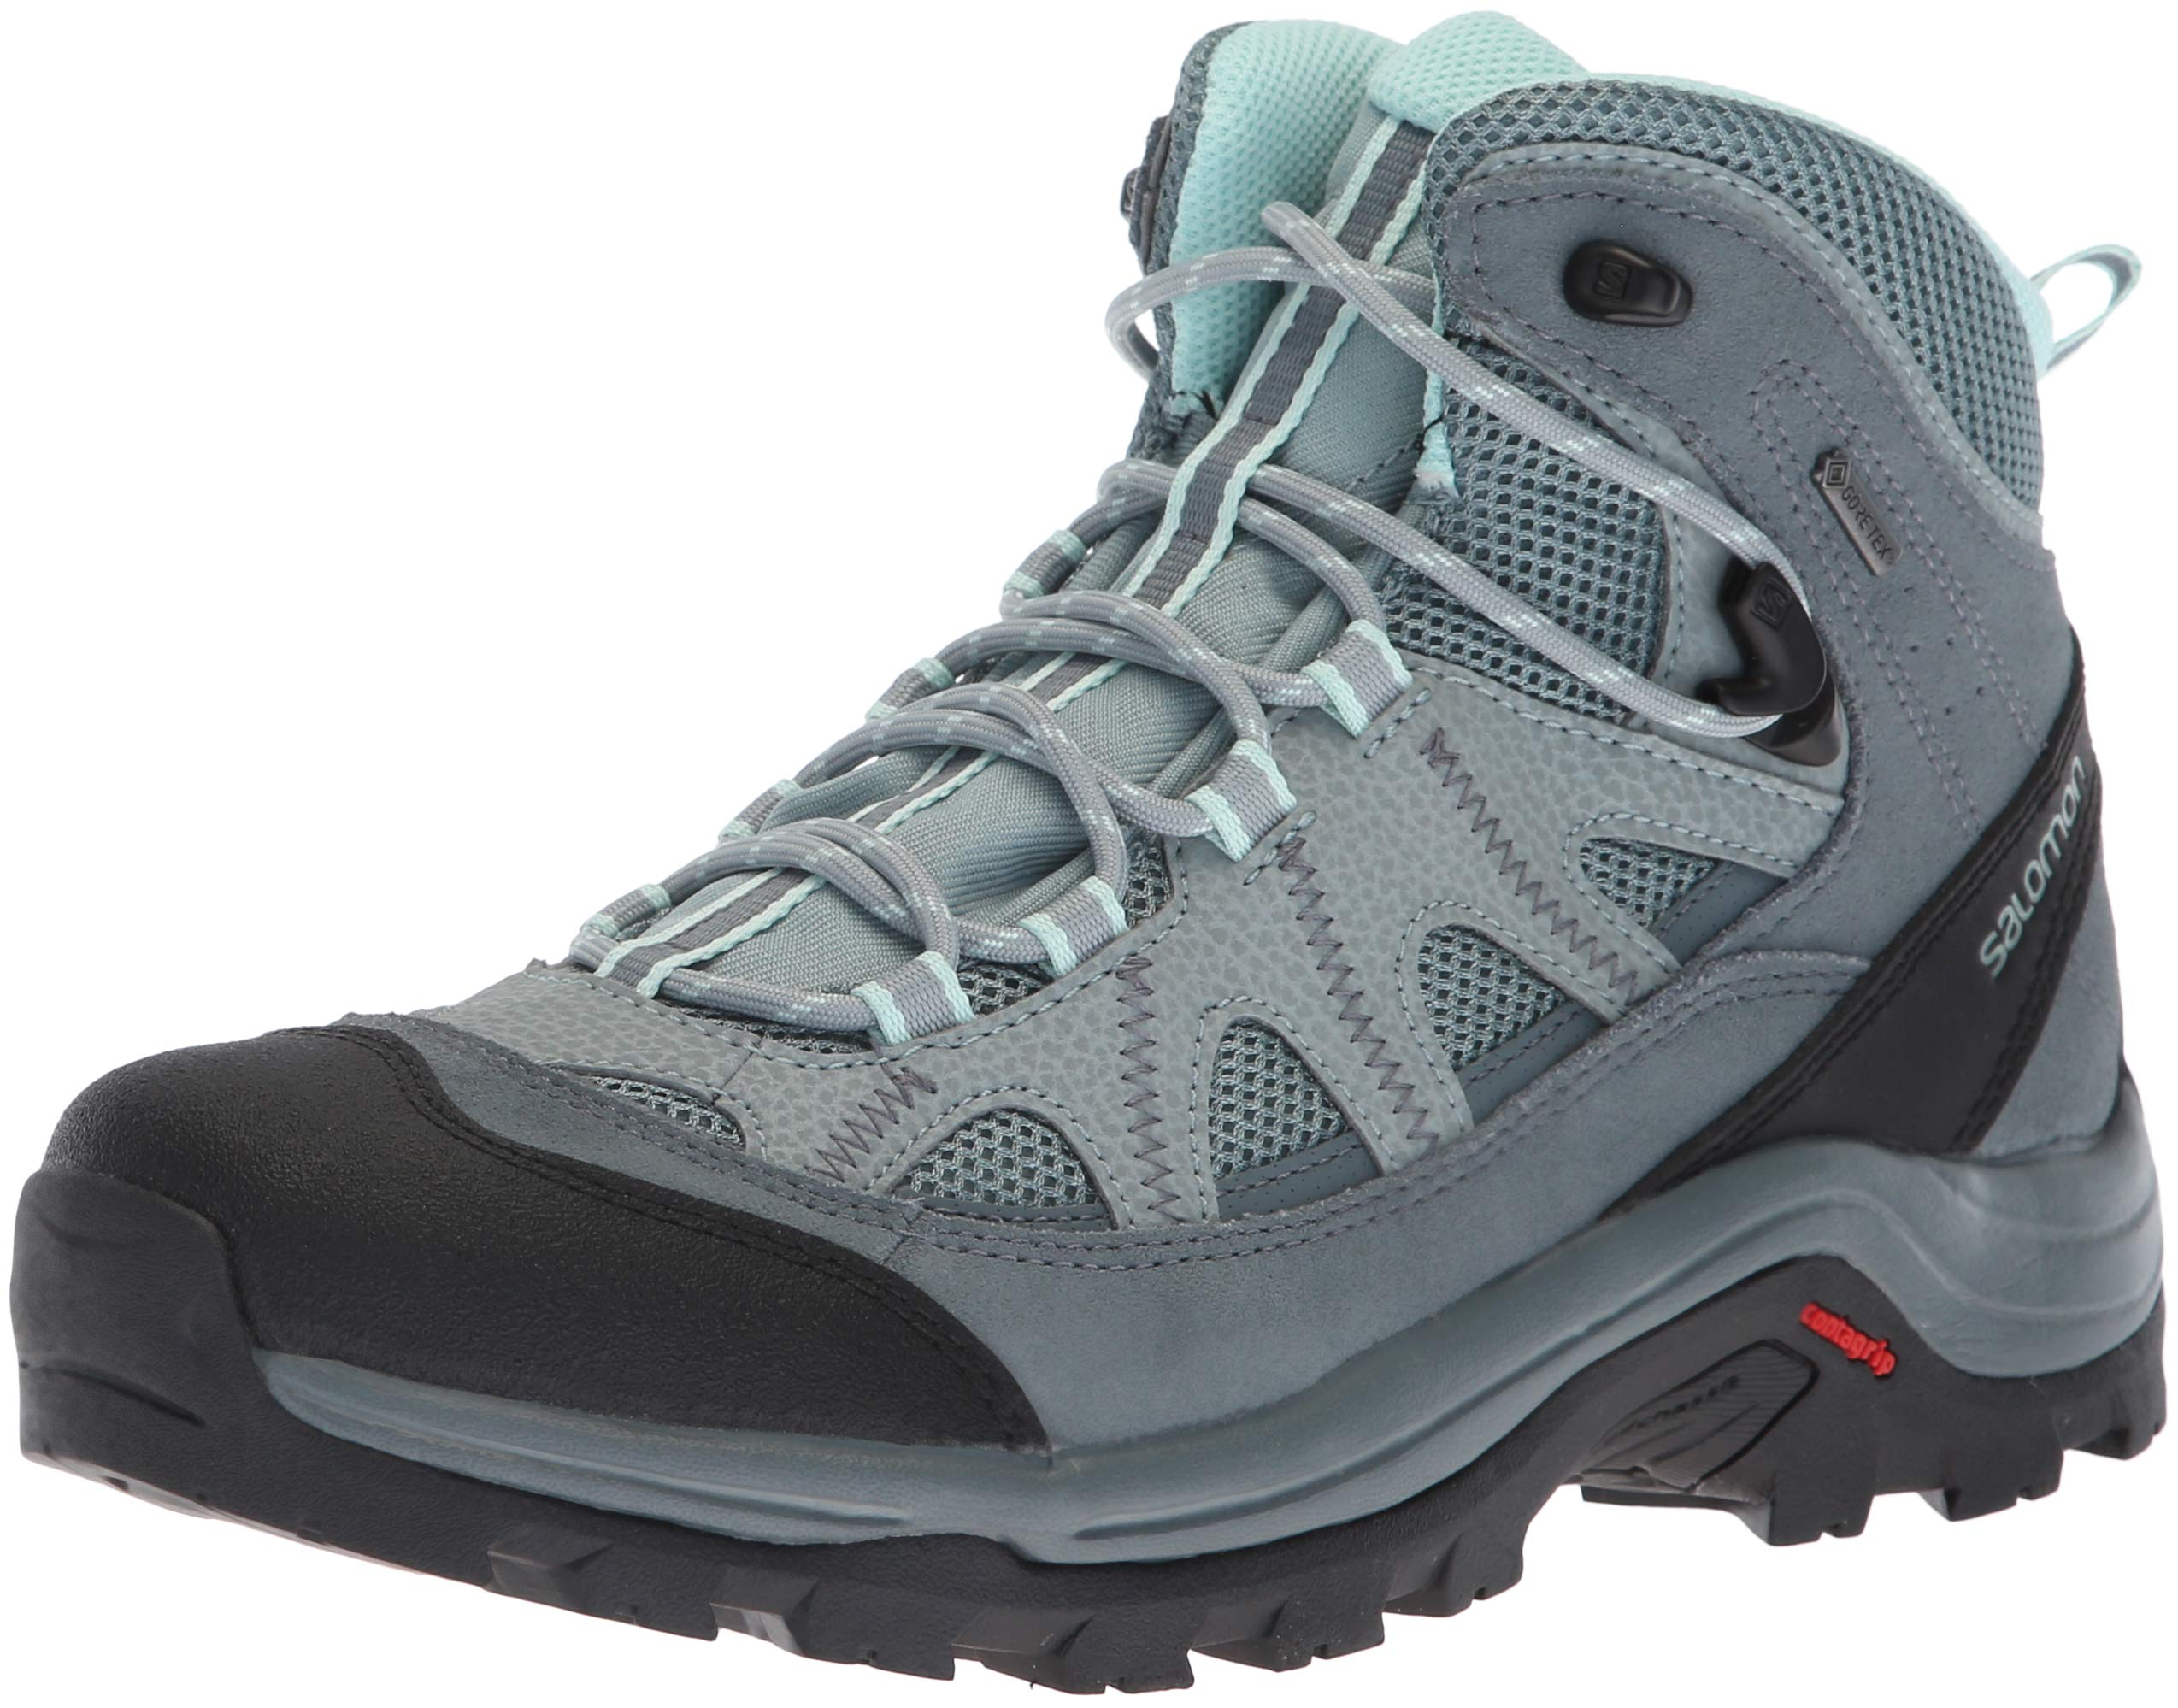 Salomon Women's Authentic LTR GTX W Backpacking Boot, Lead/Stormy Weather/Eggshell Blue, 9 B US